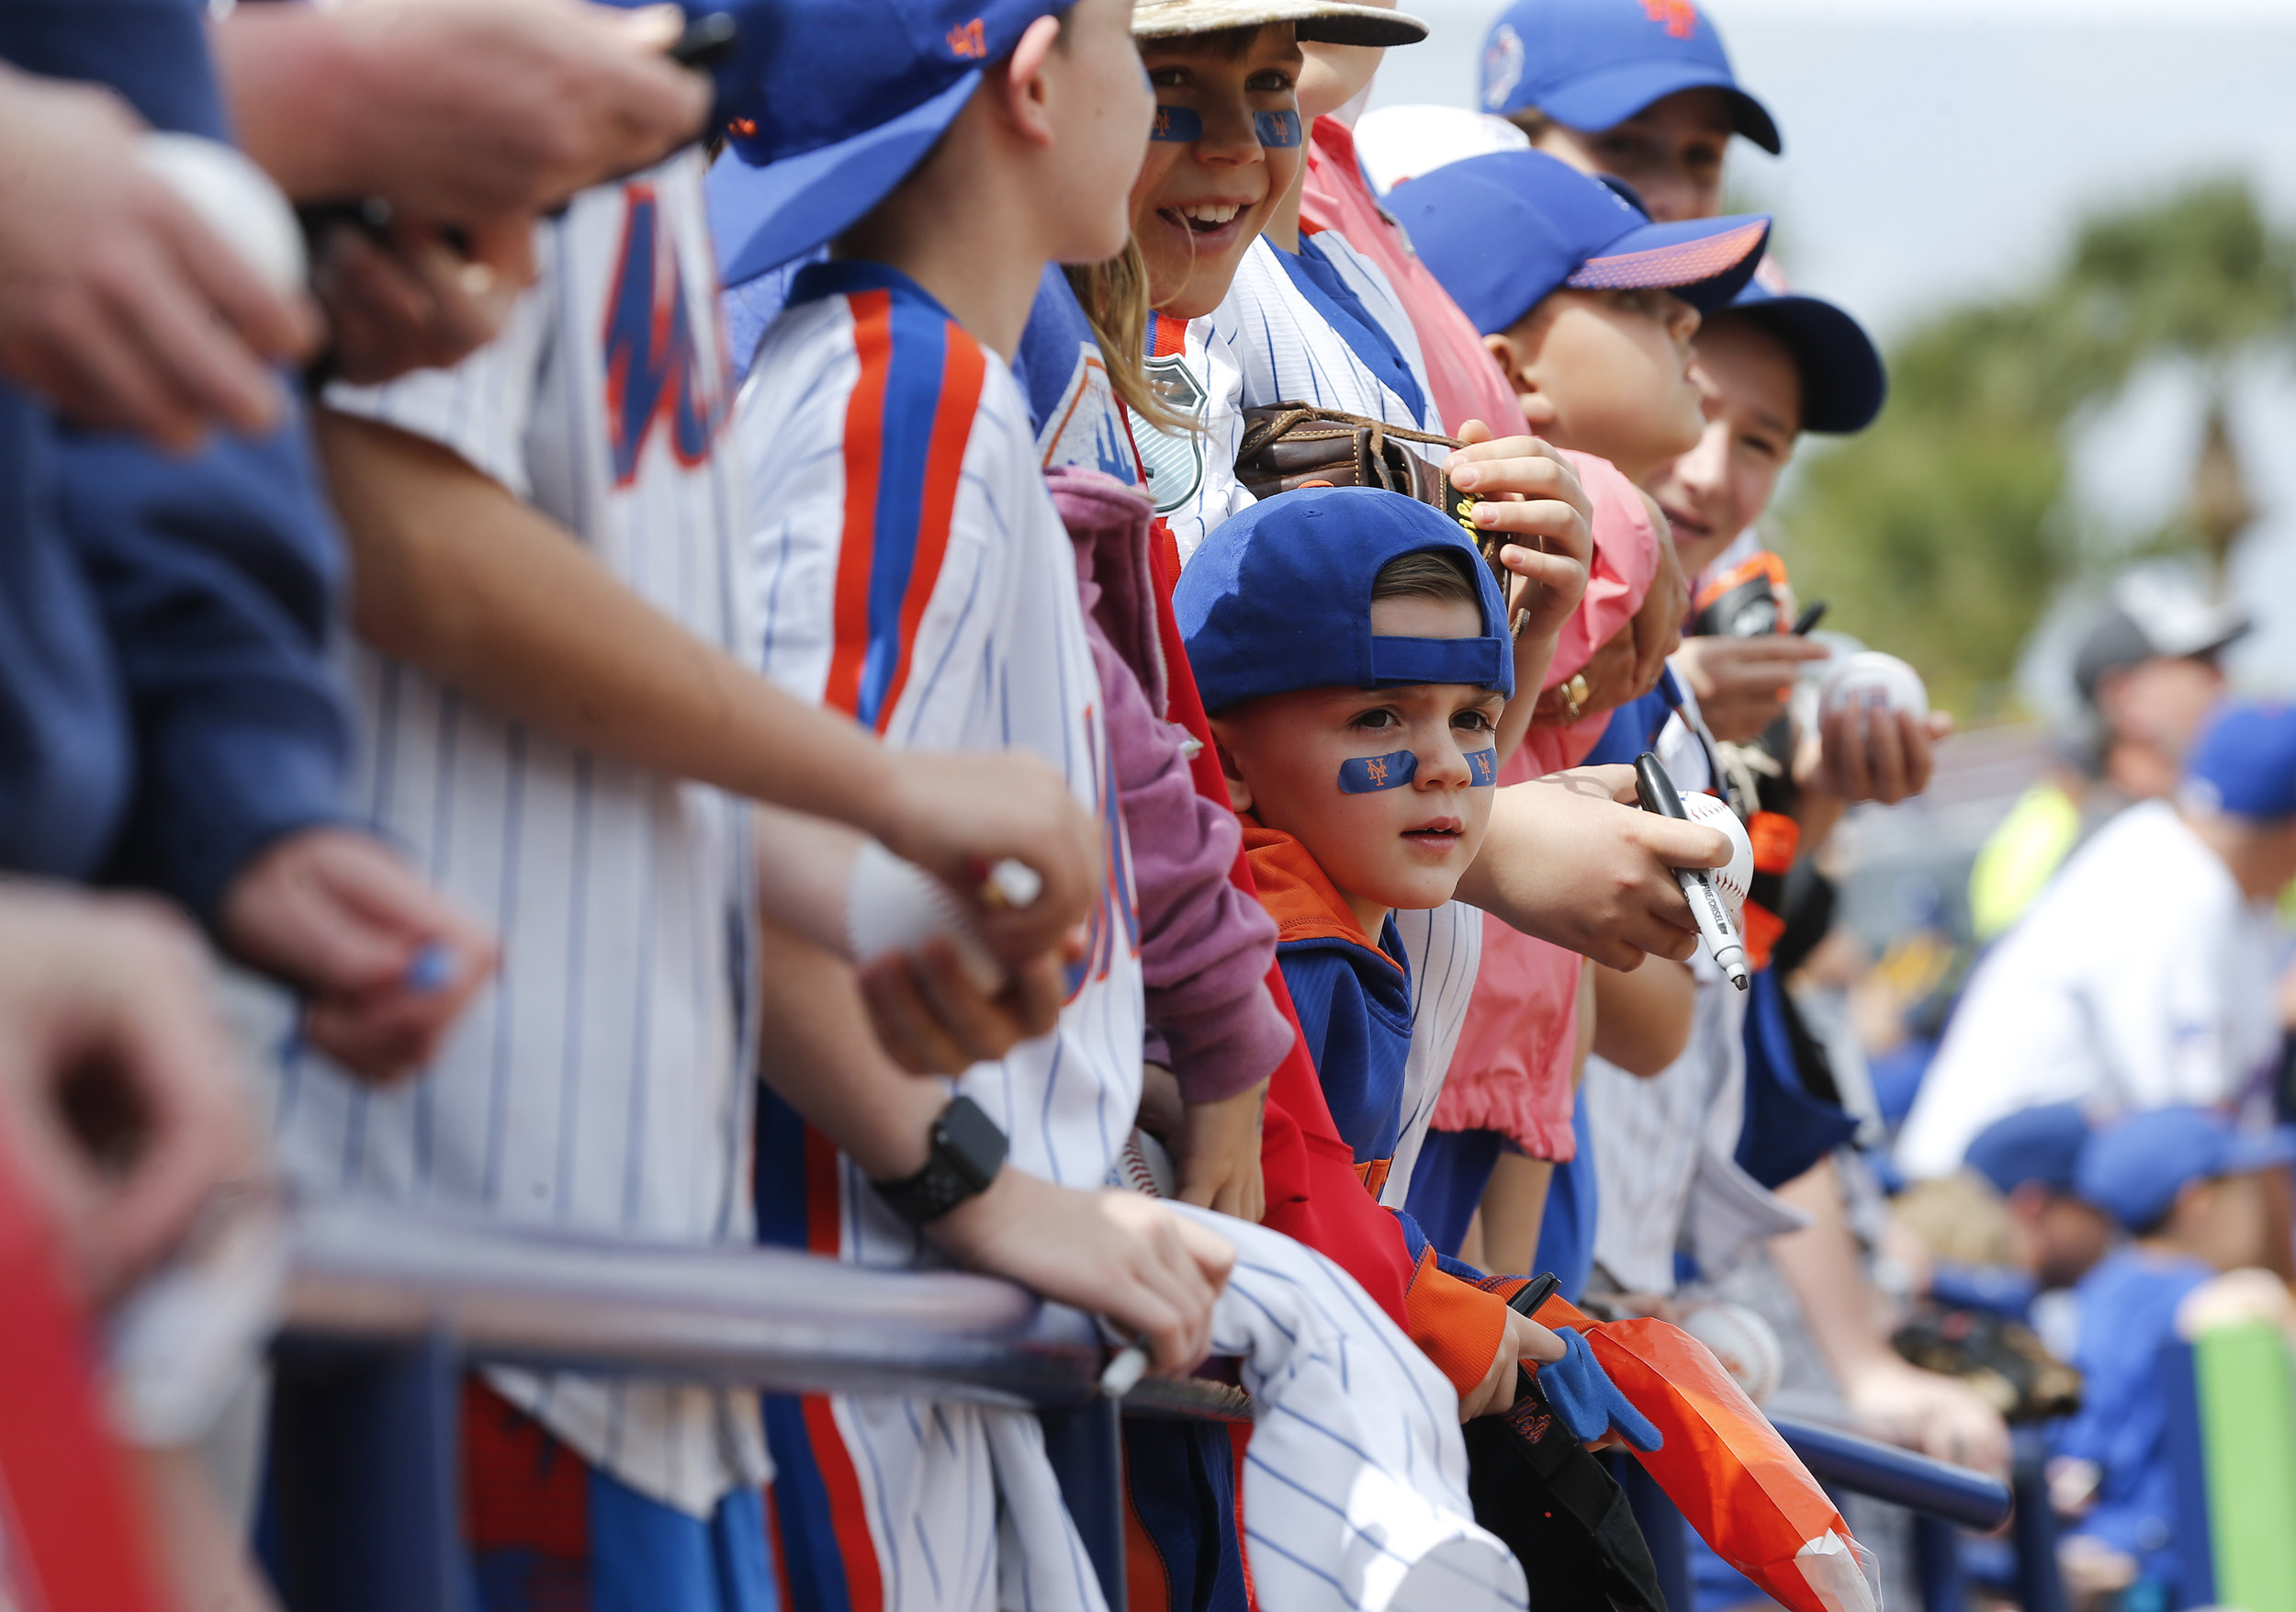 Young fans wait for autographs before a spring training baseball game between the New York Mets and the Houston Astros, Friday, March 3, 2017, in Port St. Lucie, Fla. (AP Photo/John Bazemore)